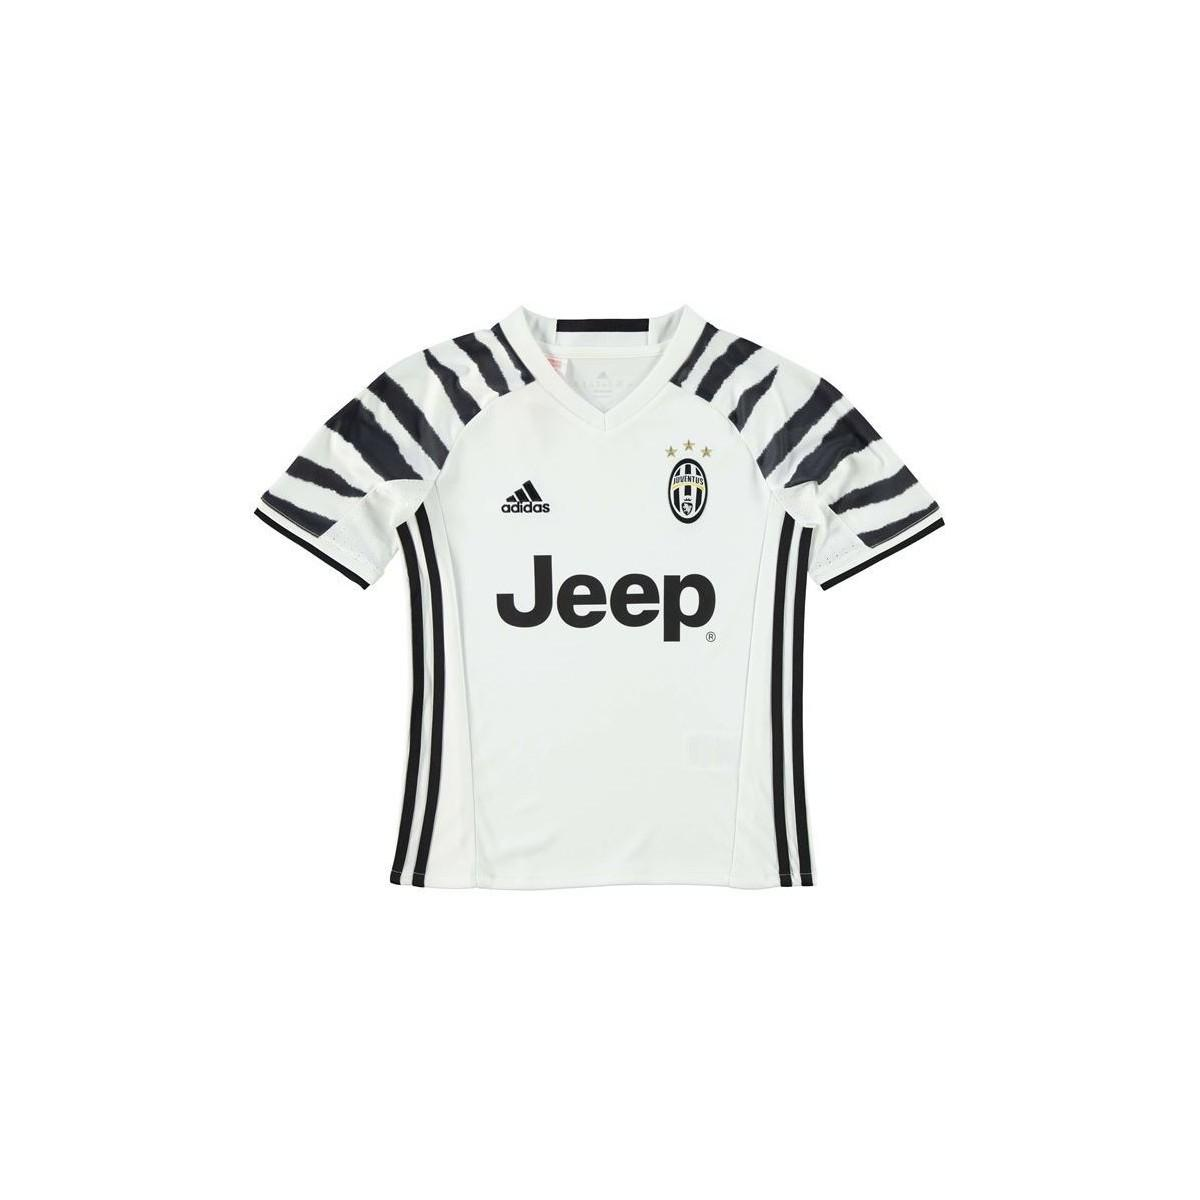 newest 379fb bf0e1 Adidas - 2016-17 Juventus 3rd Shirt (marchisio 8) - Kids Women's T Shirt In  White - Lyst